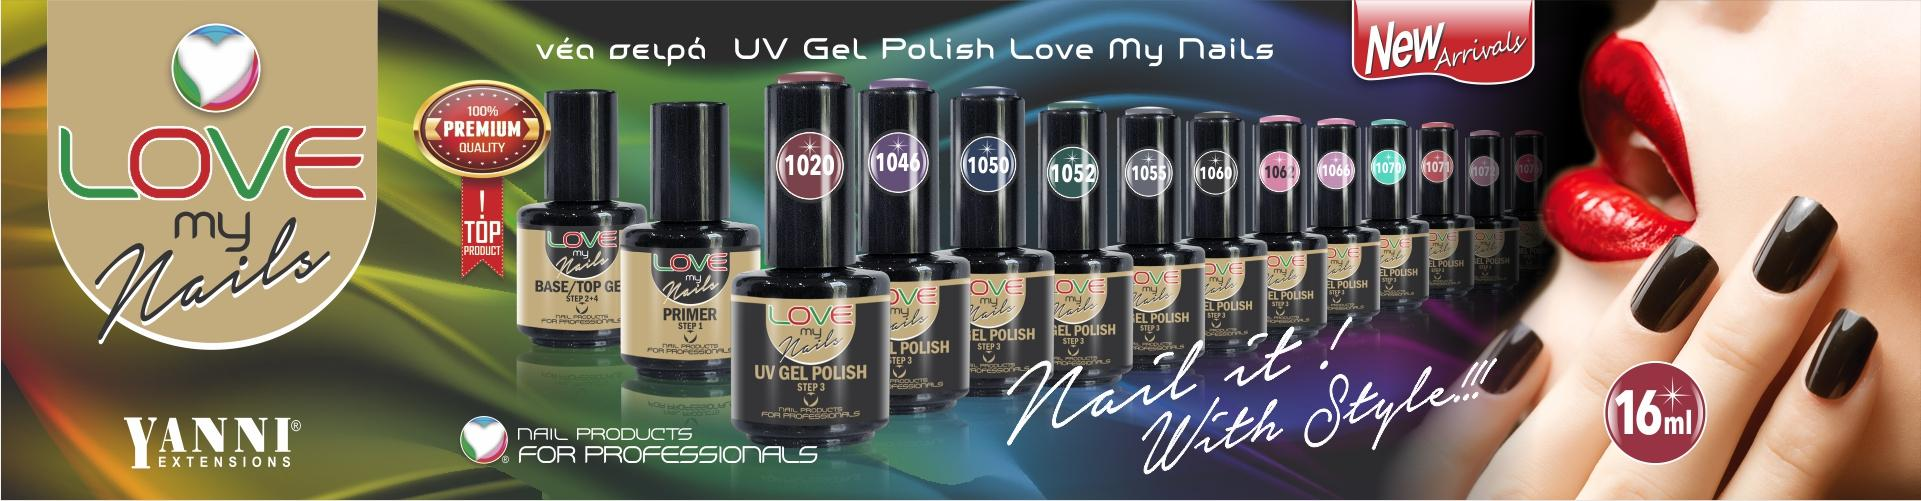 love_my_nails_banner_site